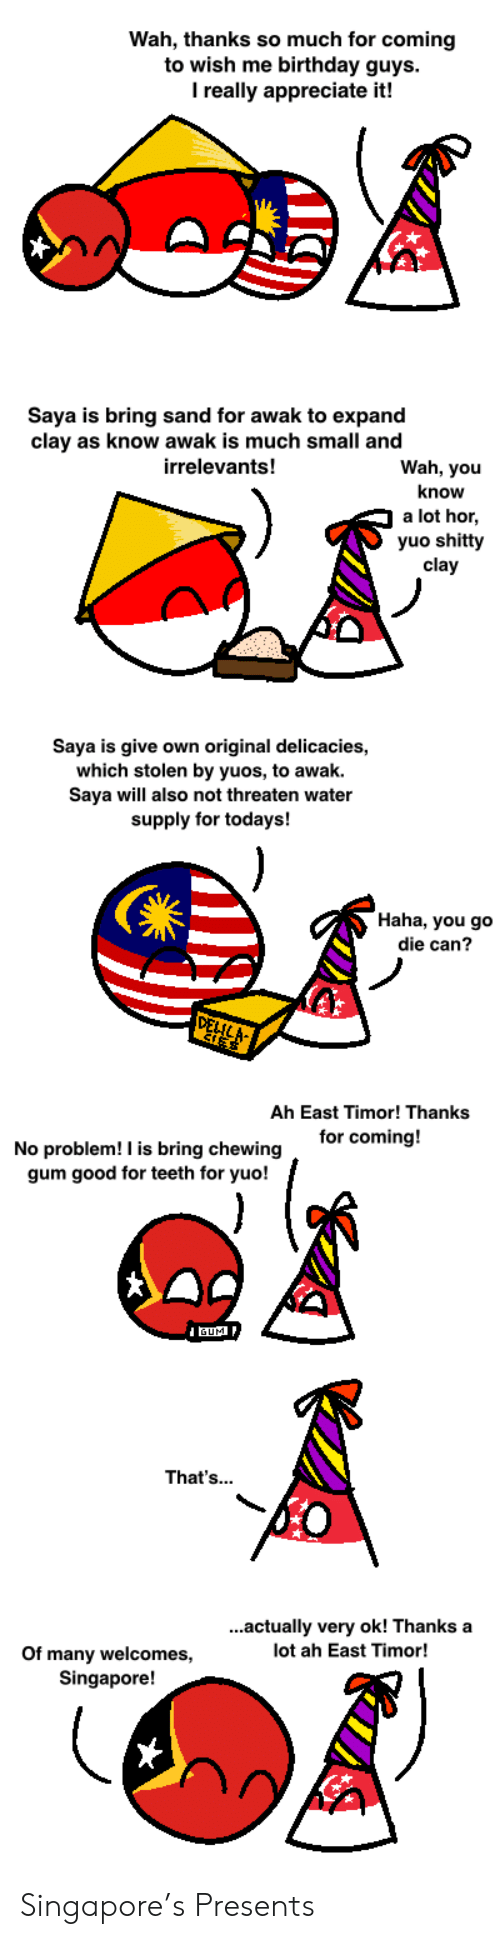 Birthday, Appreciate, and Good: Wah, thanks so much for coming  to wish me birthday guys.  I really appreciate it!  Saya is bring sand for awak to expand  clay as know awak is much small and  Wah, you  irrelevants!  know  a lot hor  yuo shitty  clay  Saya is give own original delicacies,  which stolen by yuos, to awak  Saya will also not threaten water  supply for todays!  Haha, you go  die can?  DELILA  Ah East Timor! Thanks  for coming!  No problem! I is bring chewing  gum good for teeth for yuo!  UM  That's...  ...actually very ok! Thanks a  lot ah East Timor!  Of many welcomes,  Singapore! Singapore's Presents